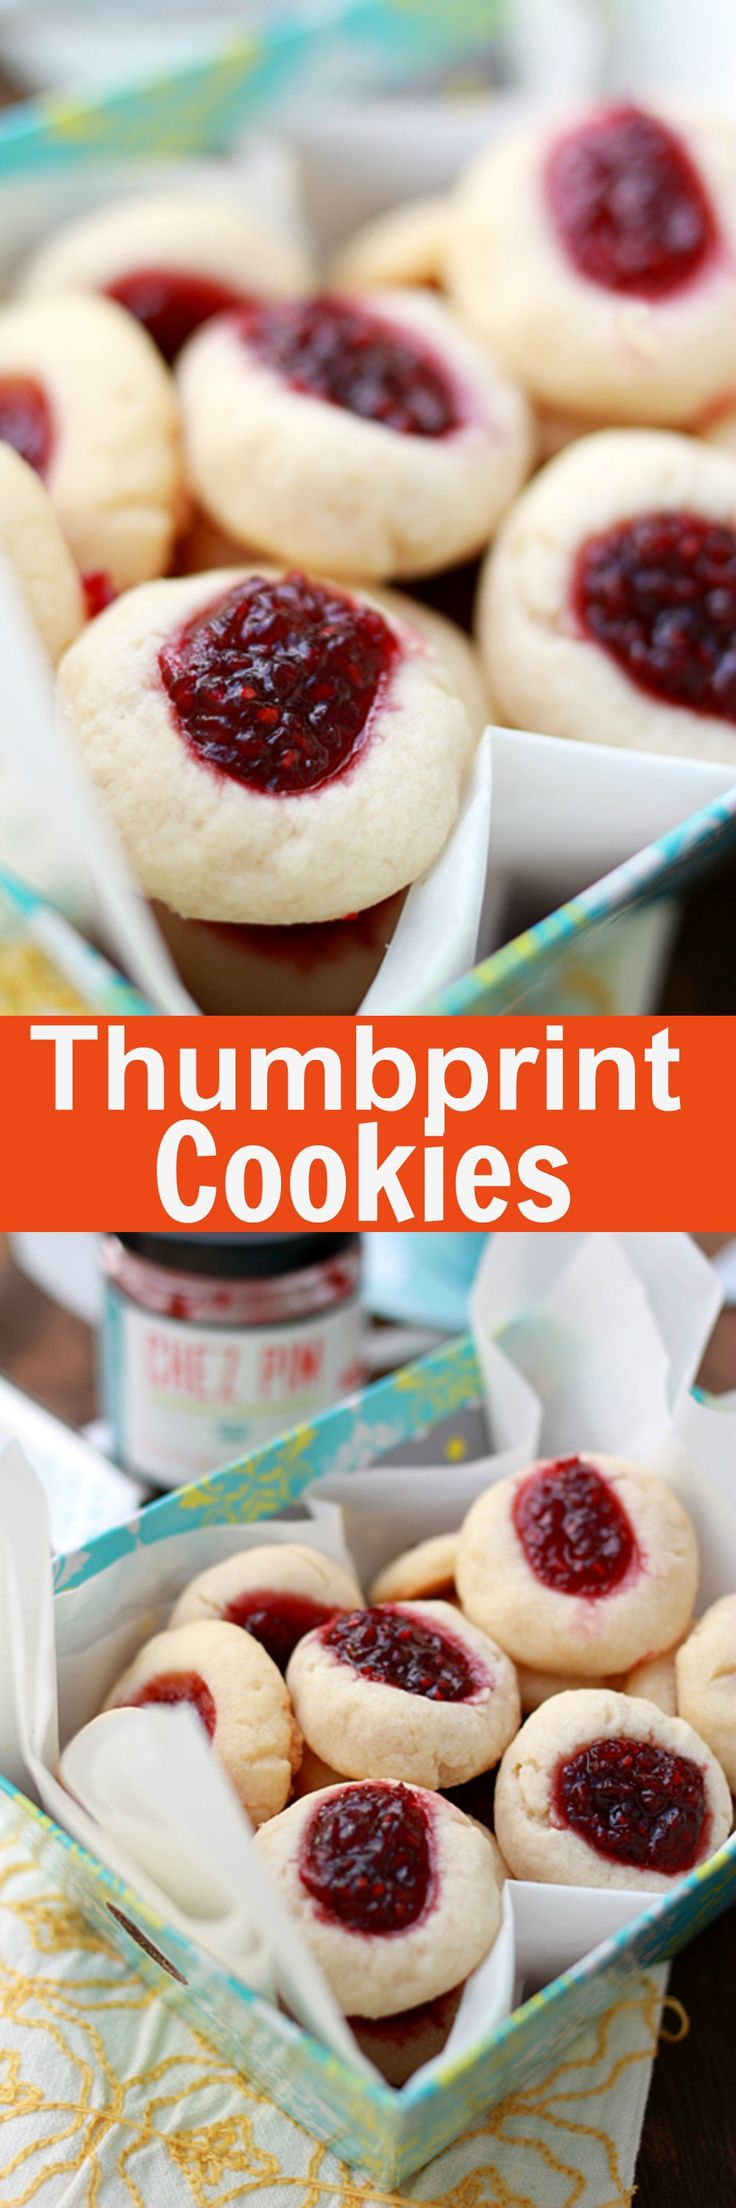 Thumbprint Cookies - best, buttery and sweet cookies filled with raspberry jam. Easy recipe that anyone can make this holiday season | rasamalaysia.com